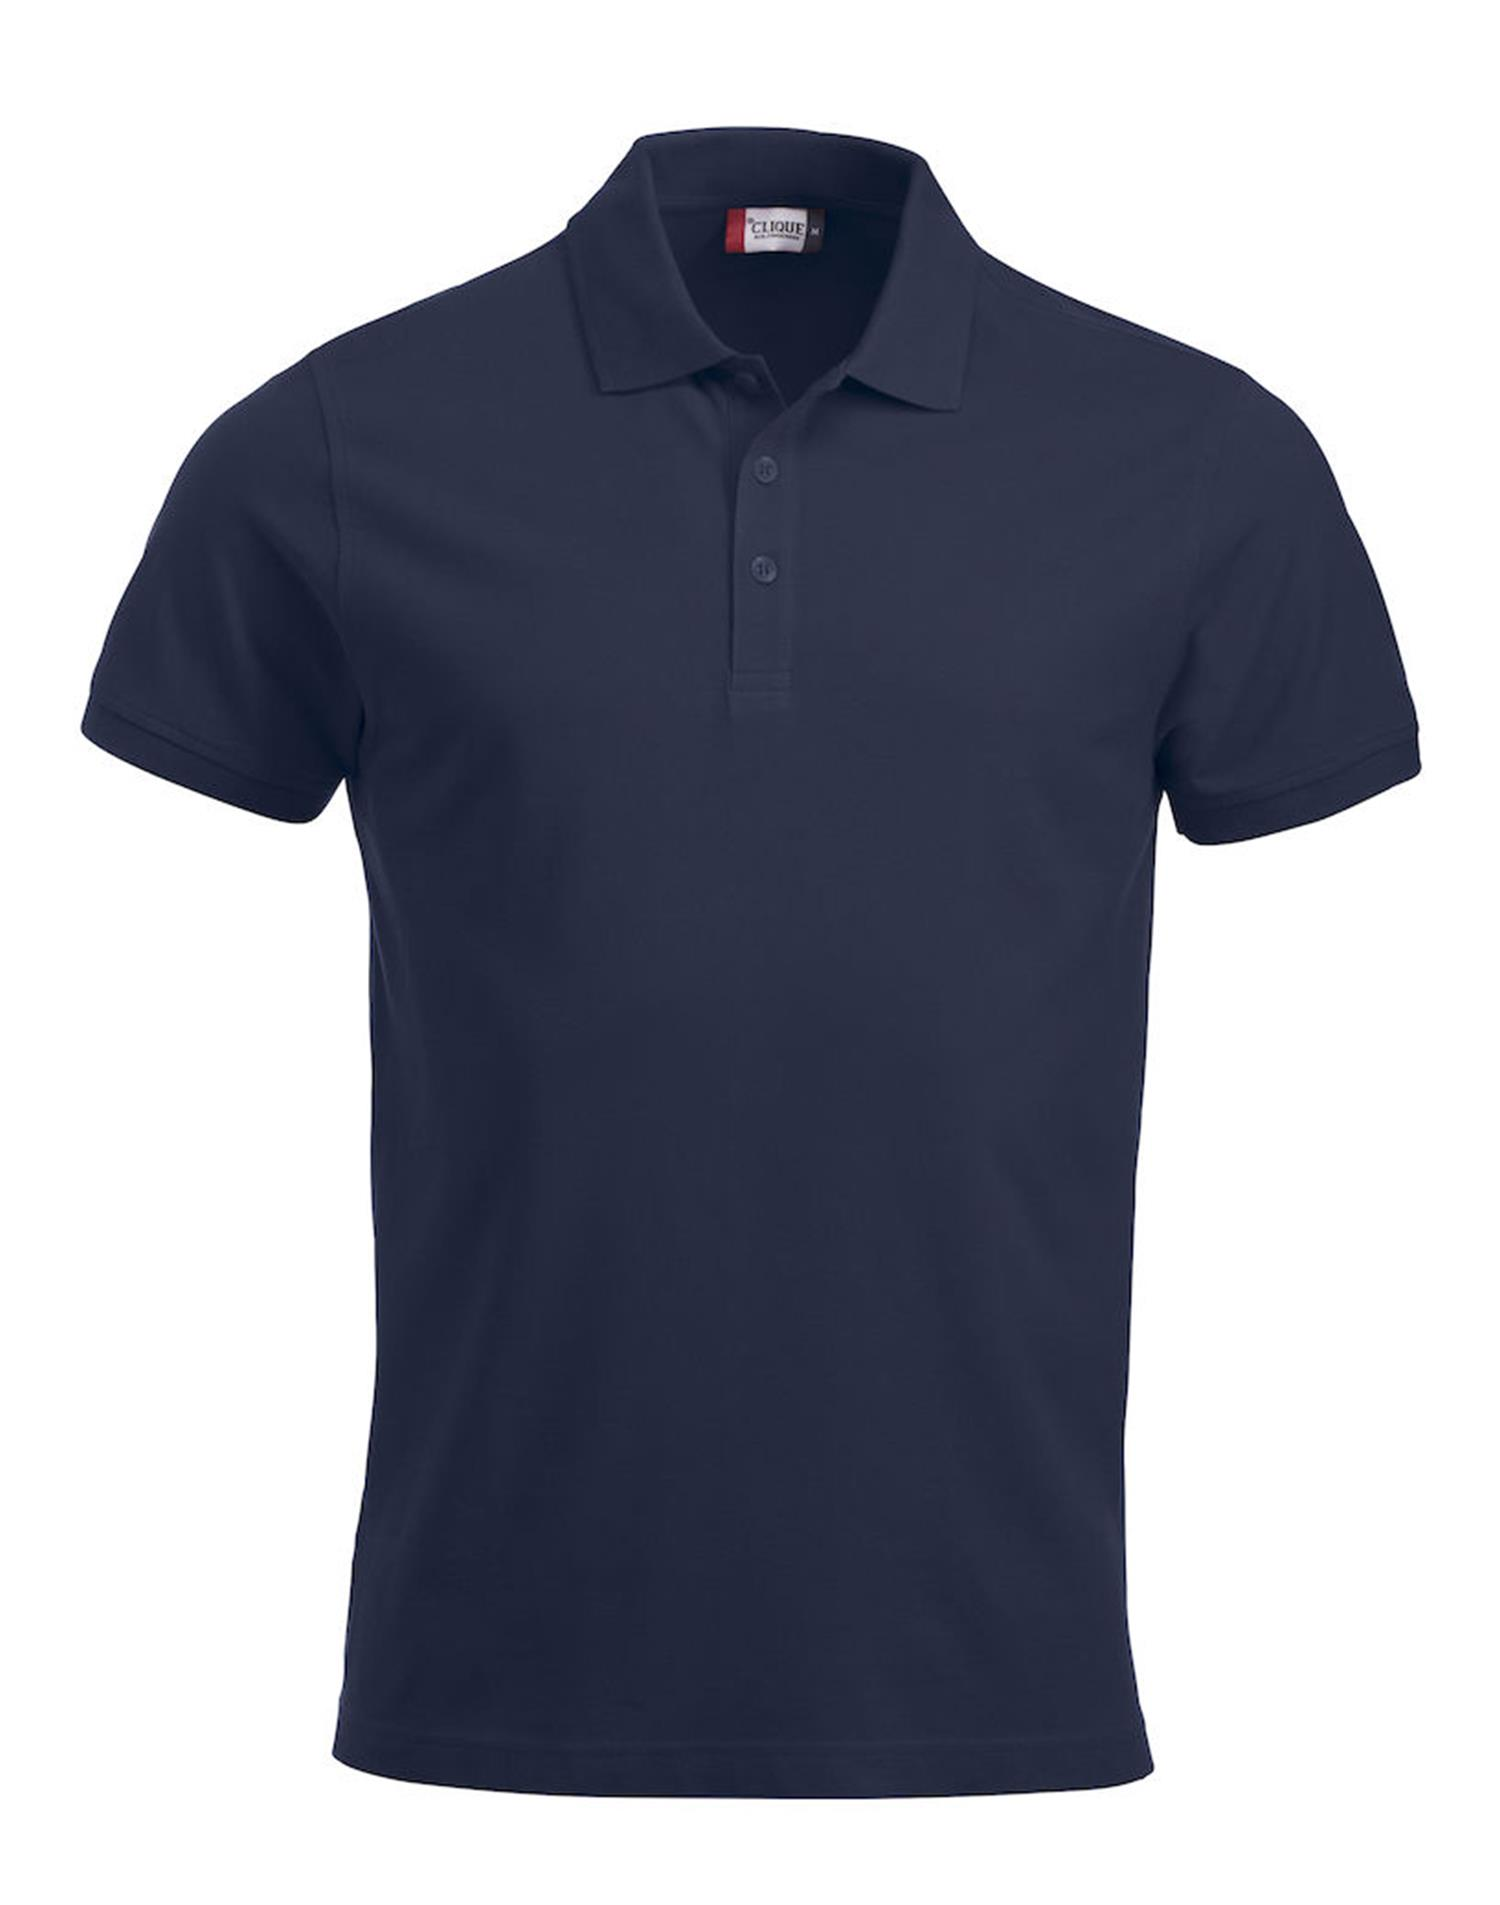 NewWave Polo Lincoln Classic Manica Corta (XS - BLU NAVY)